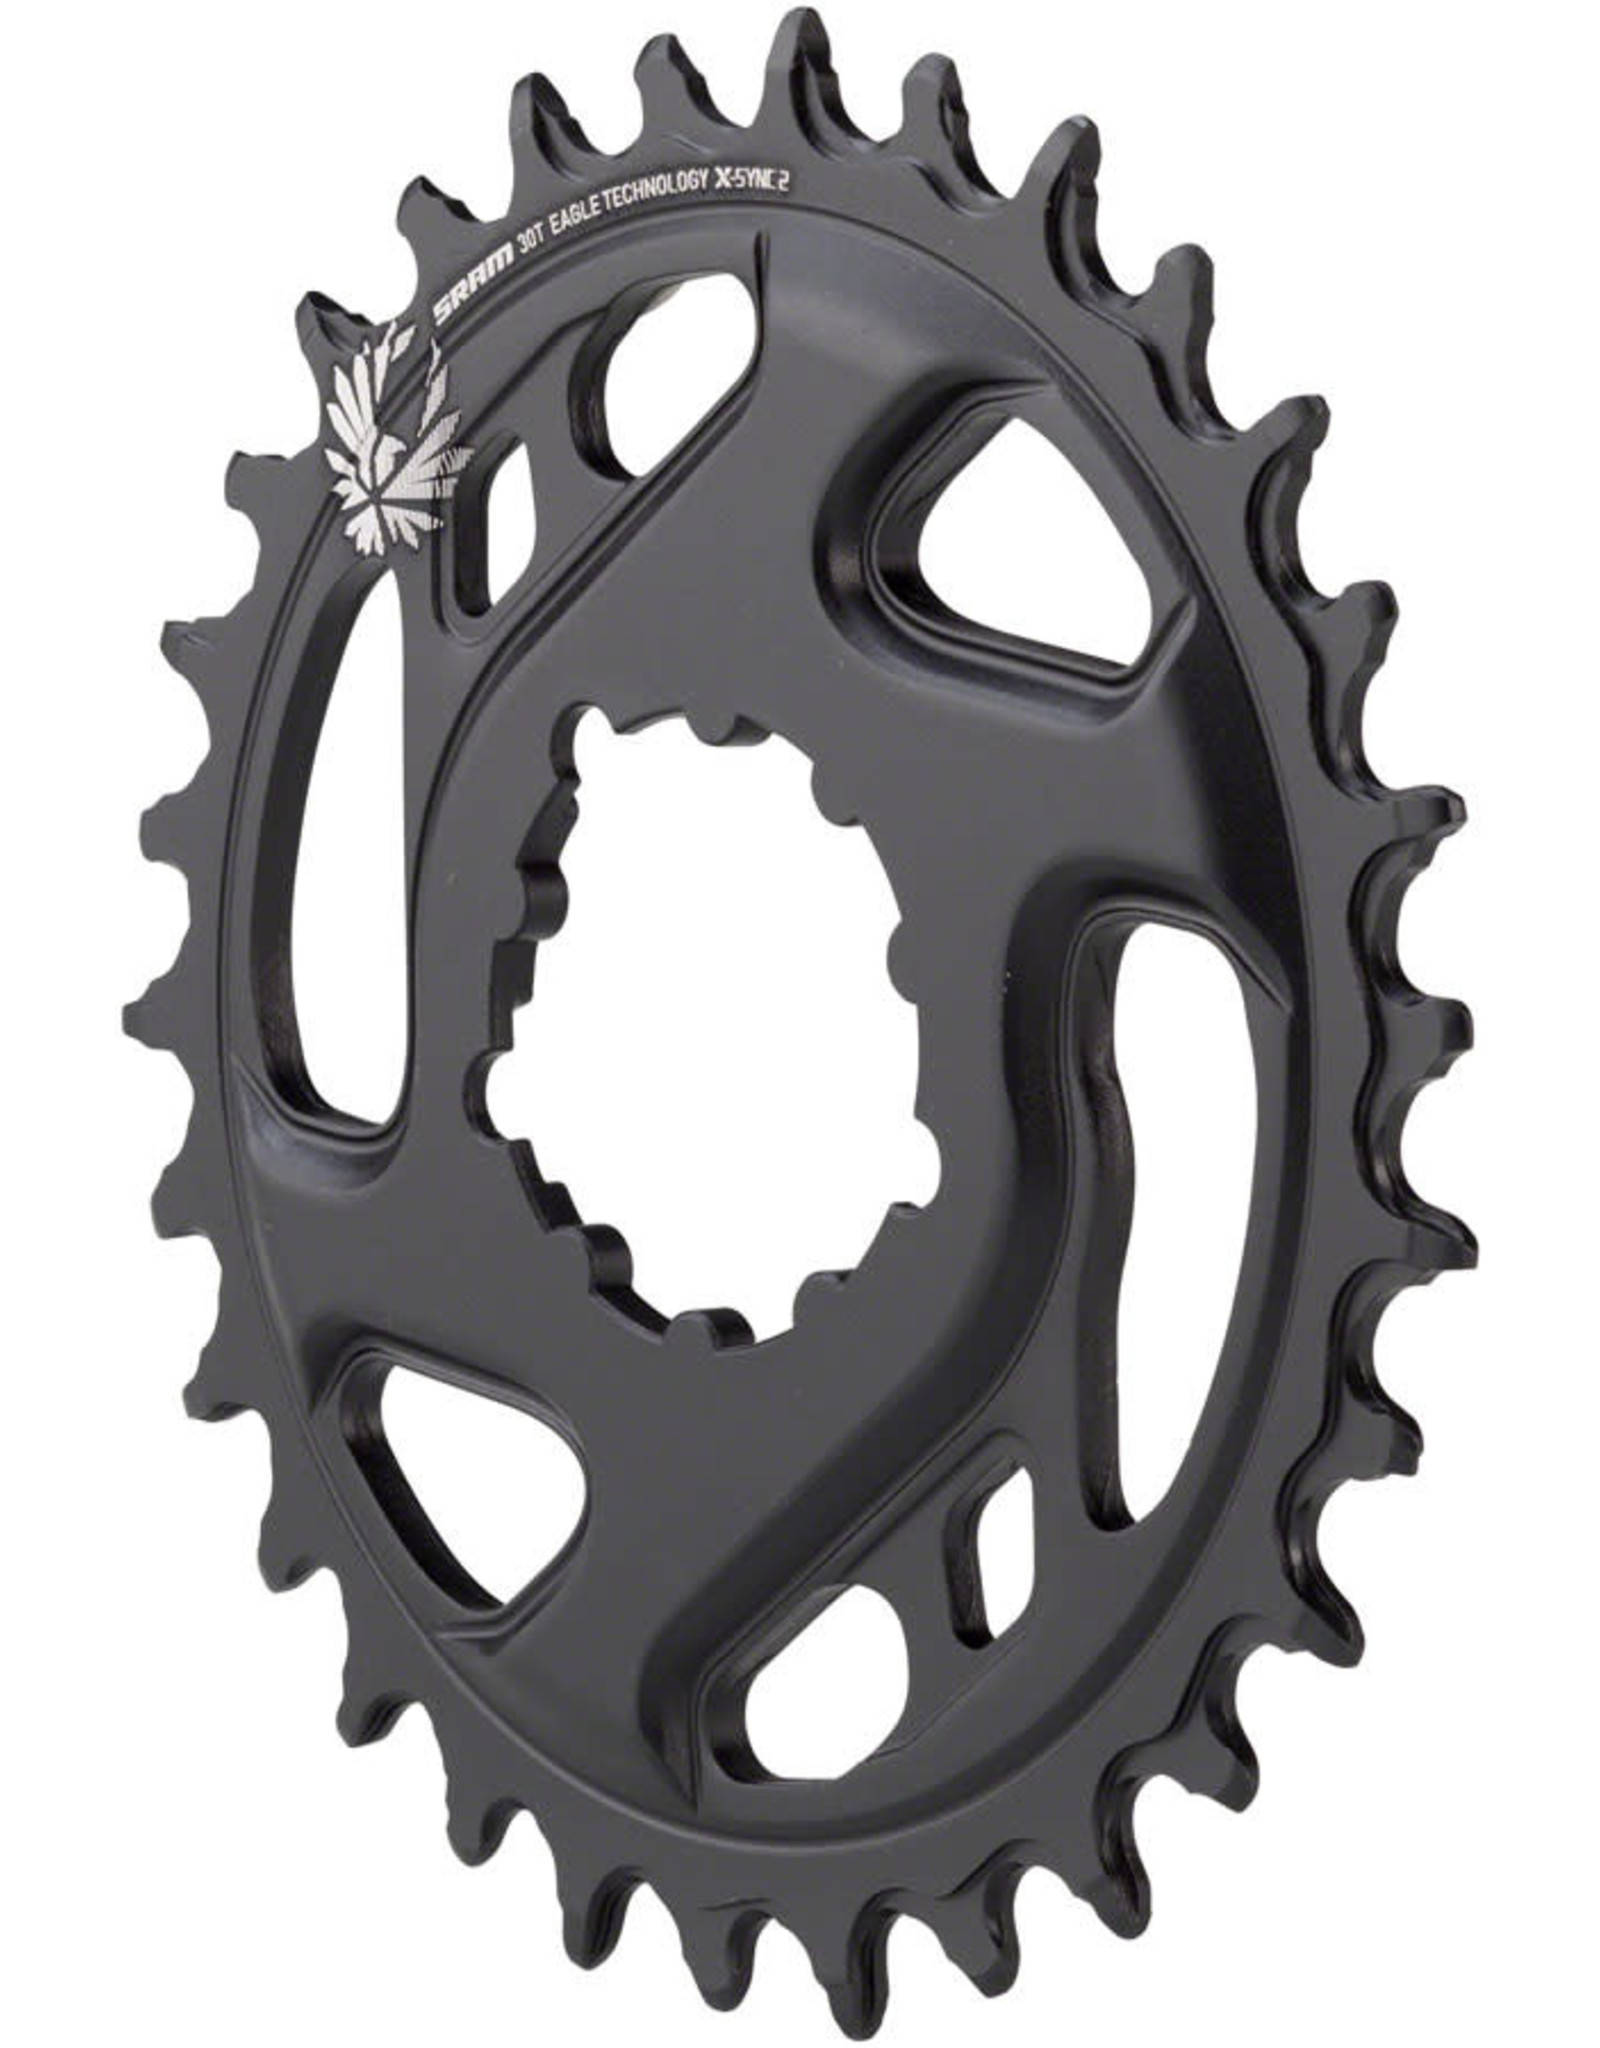 SRAM SRAM X-Sync 2 Eagle Cold Forged Direct Mount Chainring 30T Boost 3mm Offset